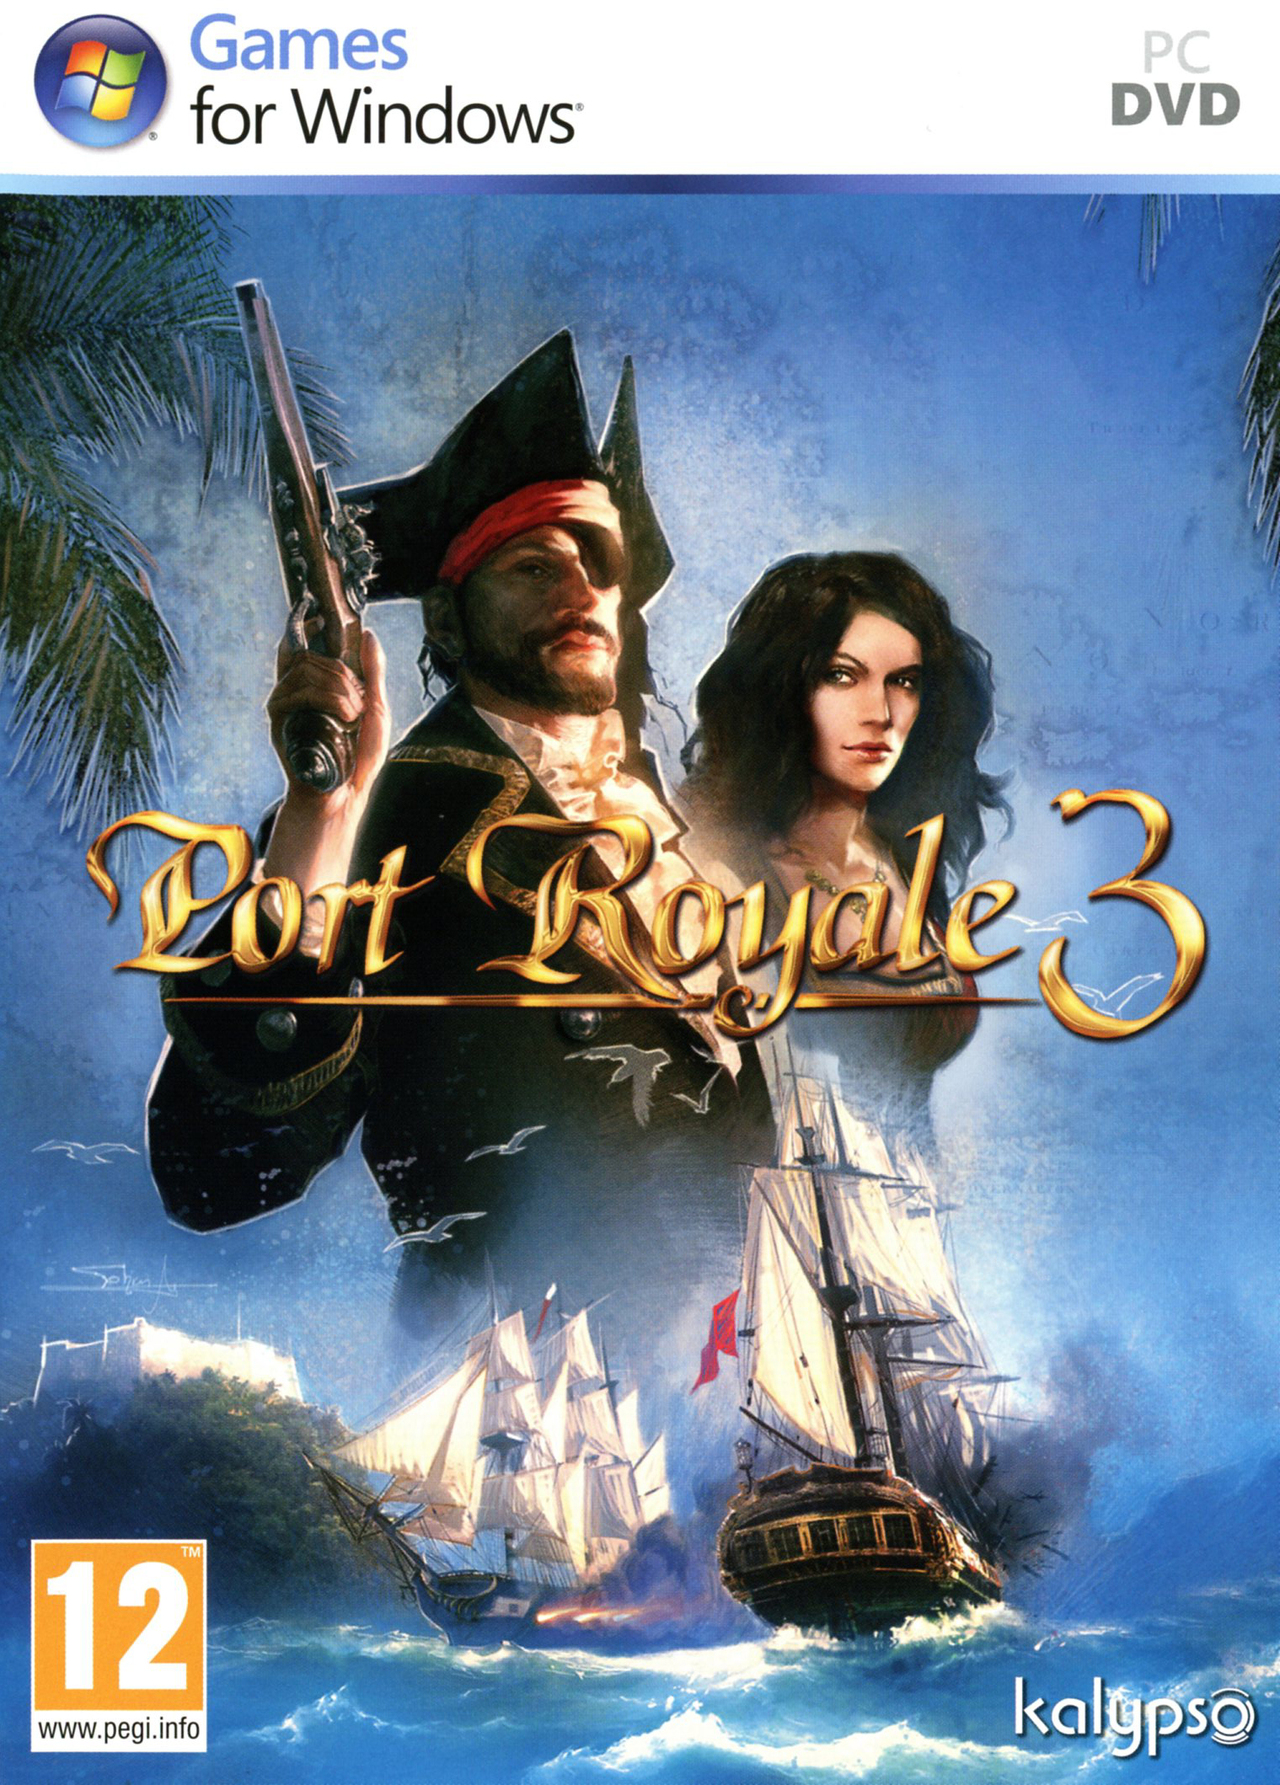 Port Royale 3 Steam Edition READNFO [MULTI]